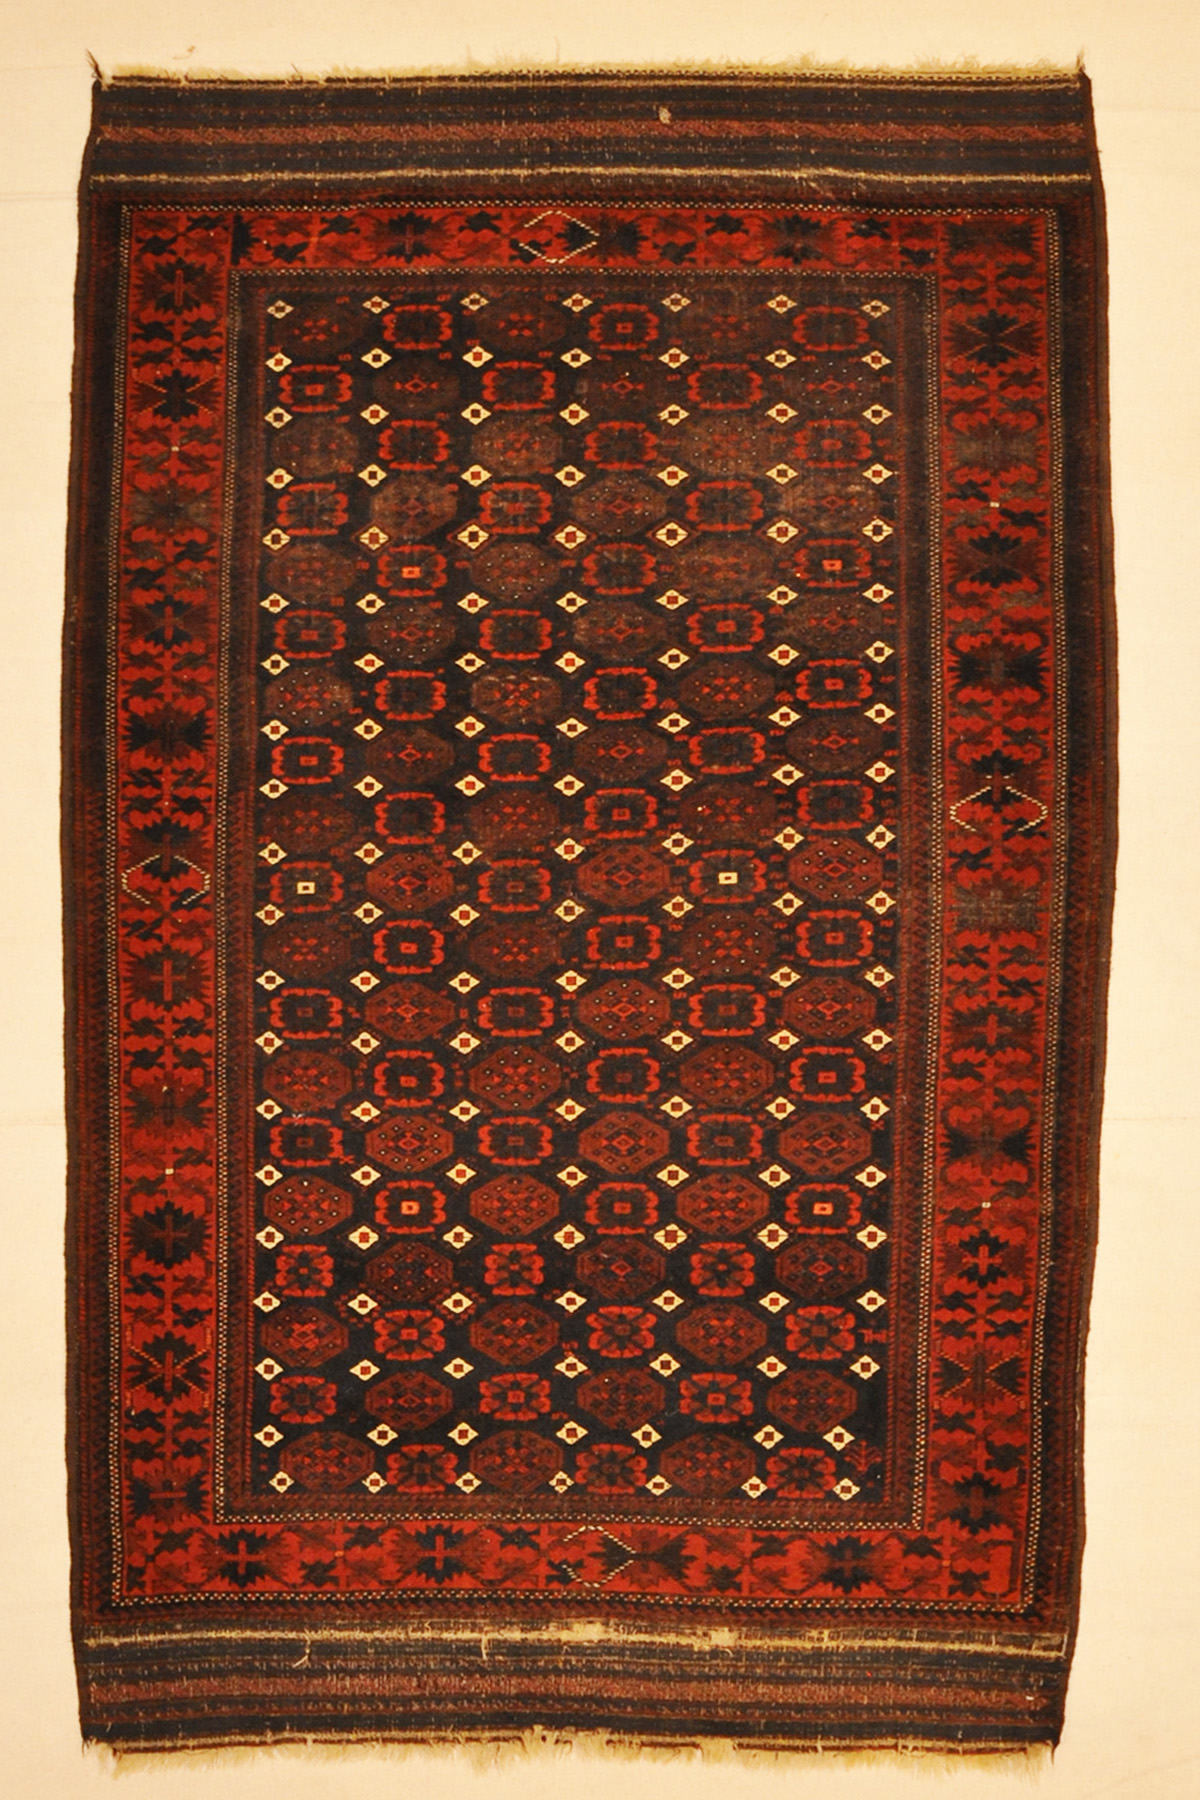 Antique Original Persian Baluch Rug with Original Ends Wool Baluchistan Santa Barbara Design Center Carpet Authentic Collectable